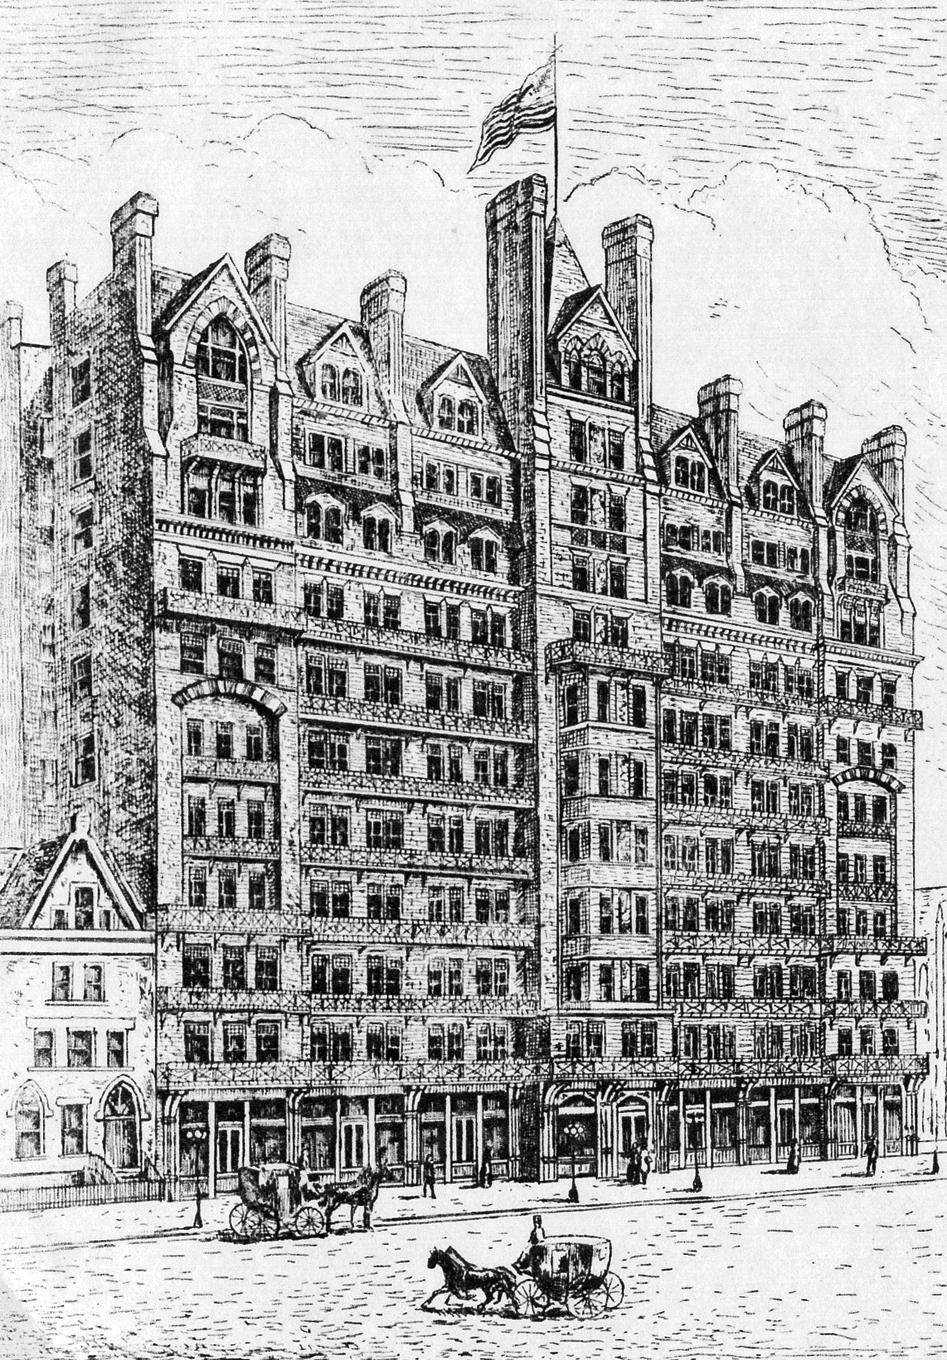 The Chelsea Hotel in 1884.